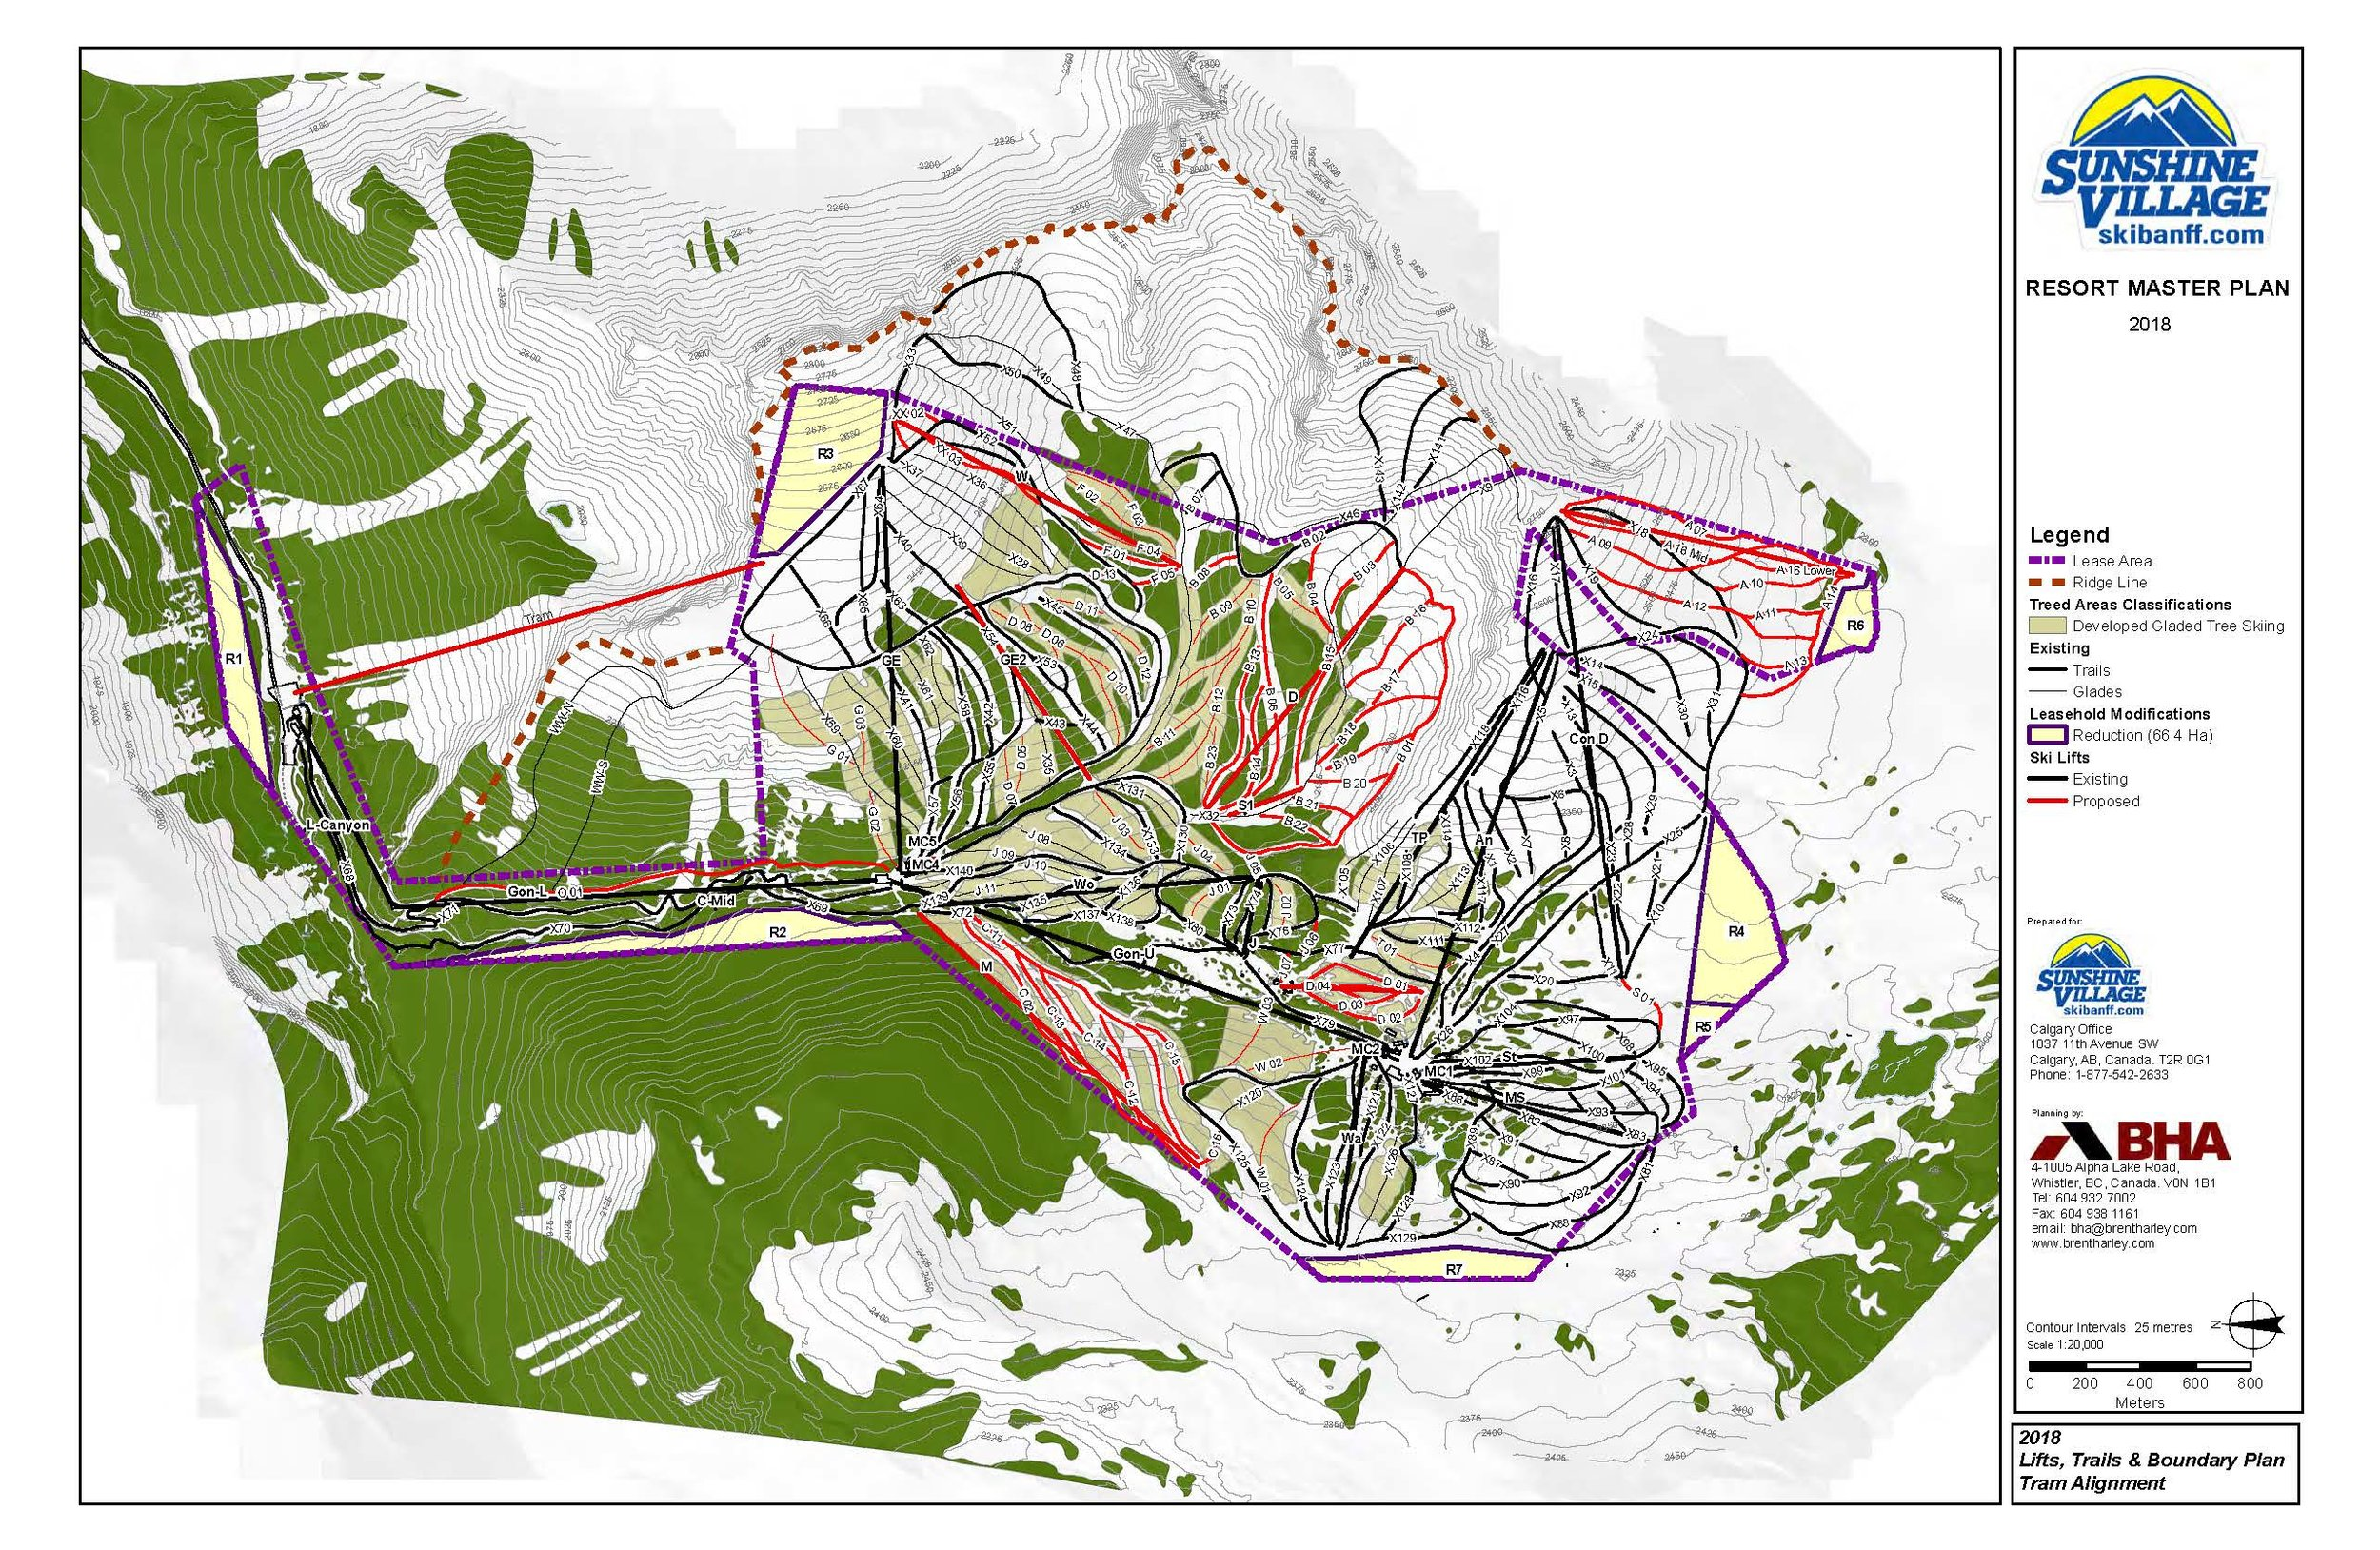 (1 to 20,000) Sunshine - Lifts Trails and Boundary Plan (Tram Alignment) (11x17) - July 3 2018.jpg